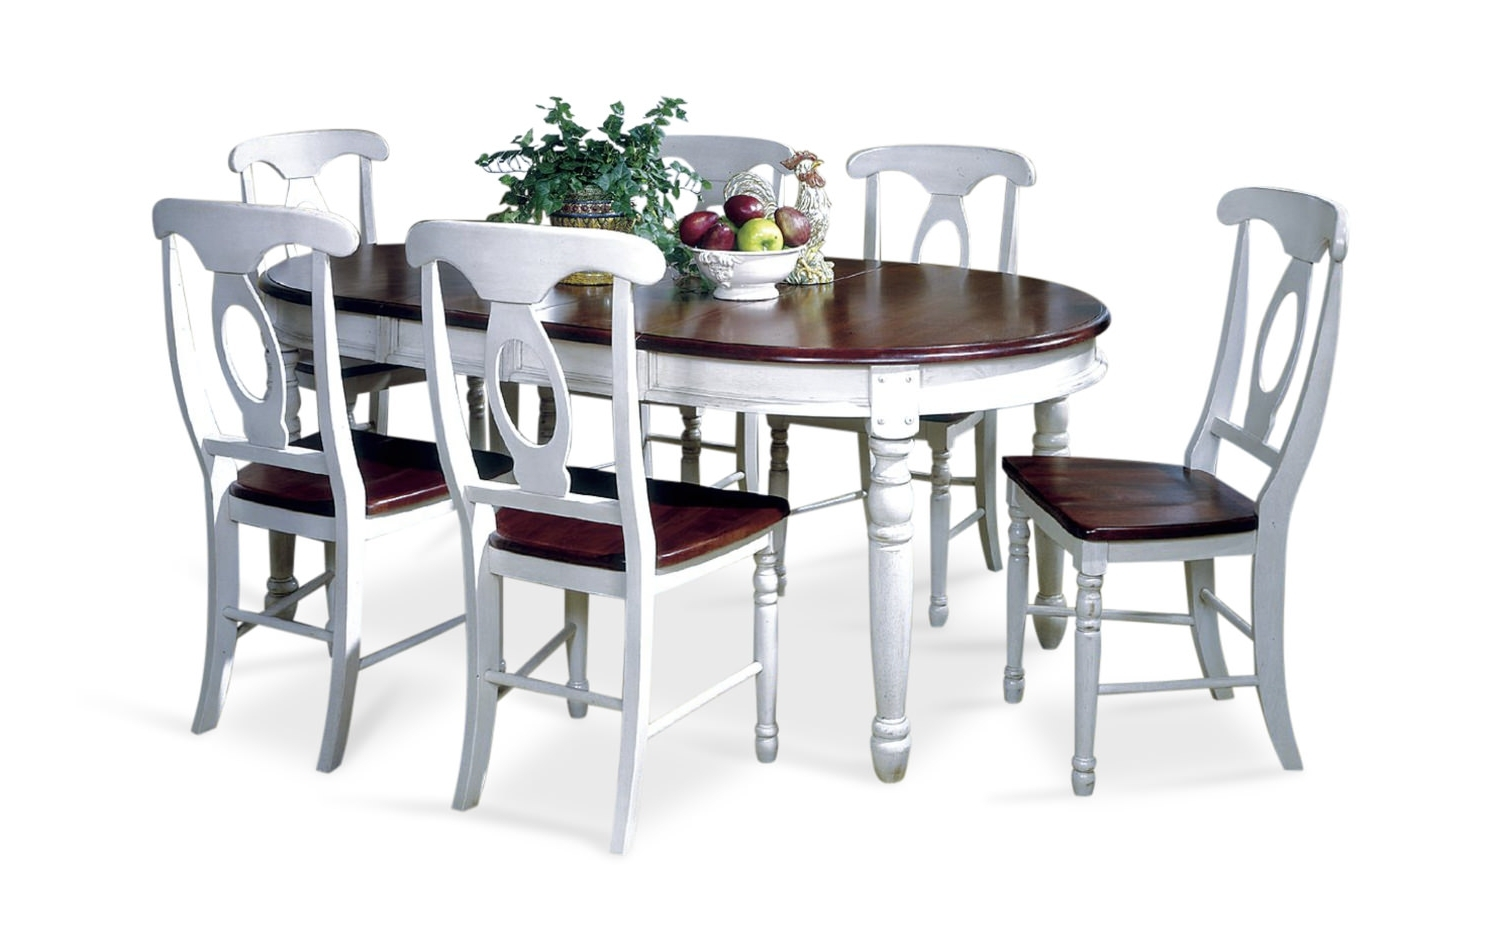 Chapleau Ii 7 Piece Extension Dining Tables With Side Chairs Inside Recent Dining Sets – Kitchen & Dining Room Sets – Hom Furniture (View 13 of 25)